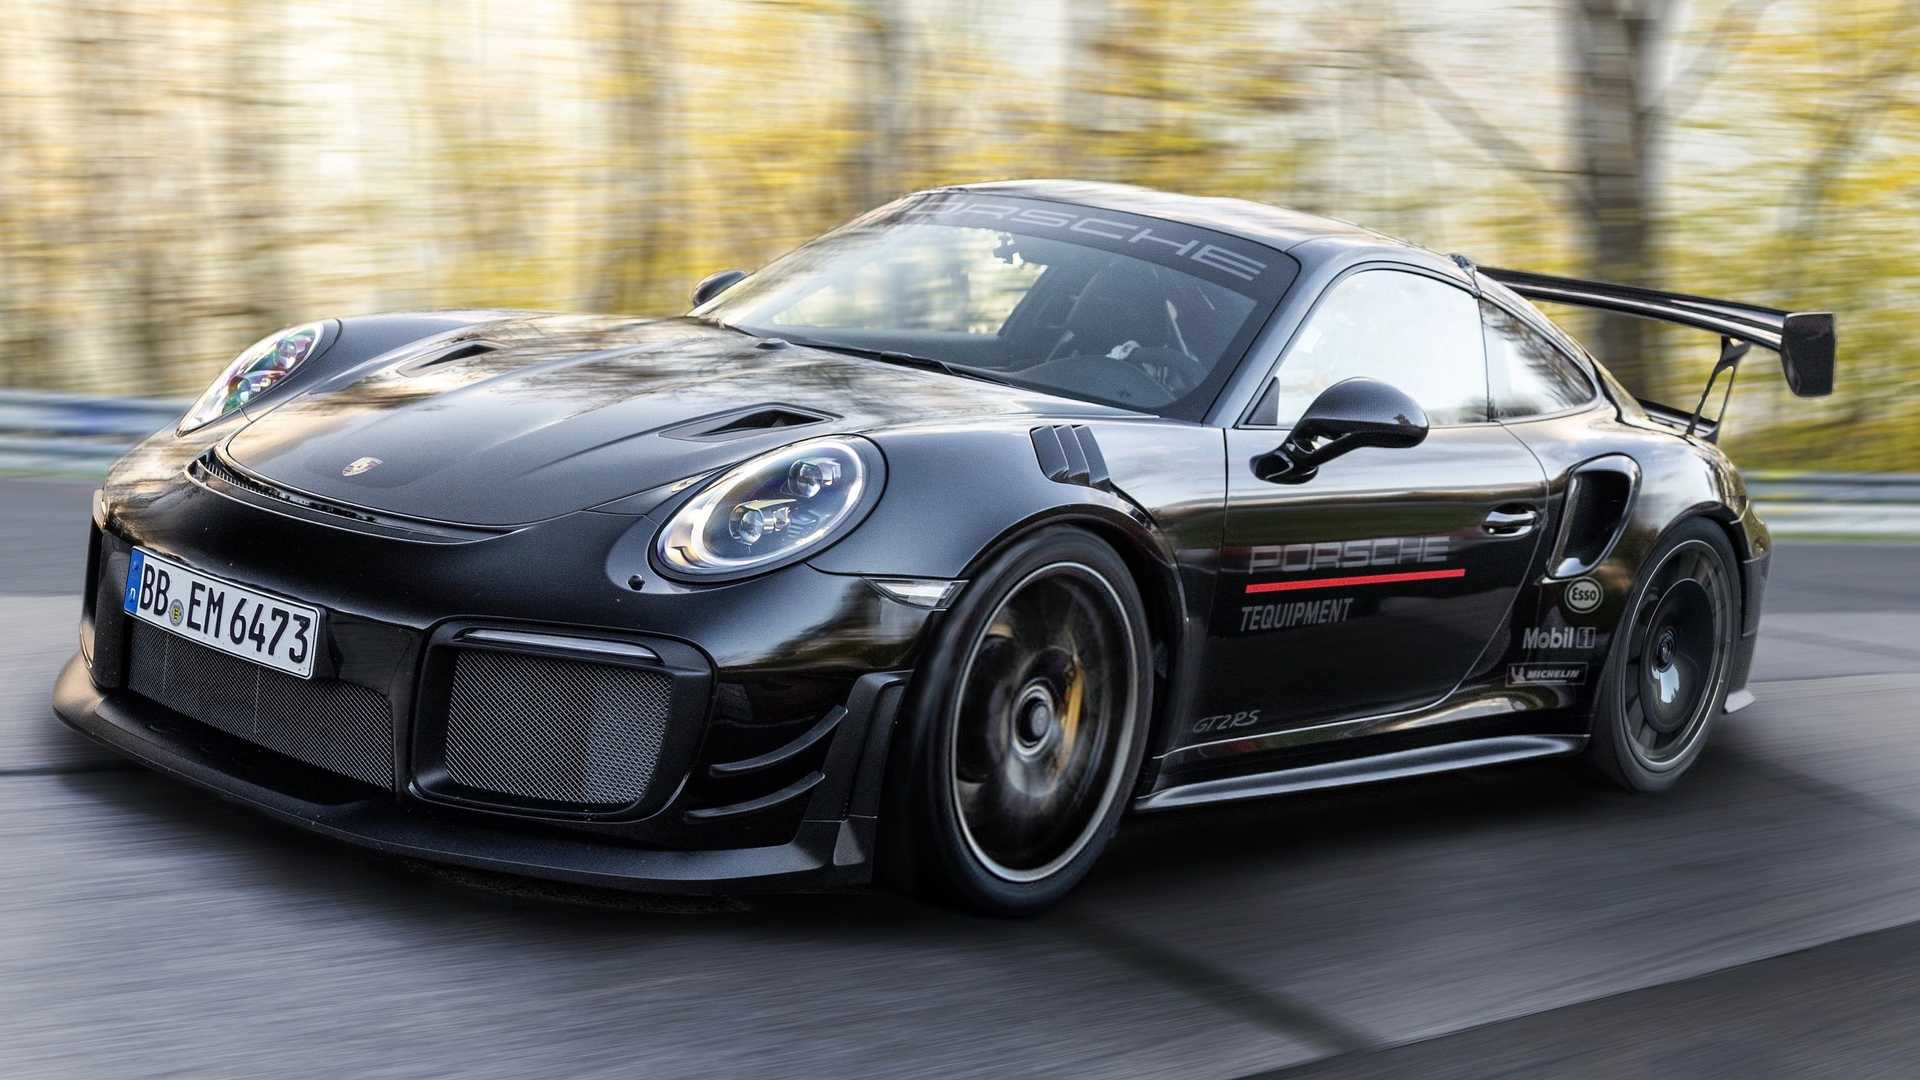 Porsche-911-GT2-RS-Manthey-Performance-Kit-Nurburgring-Record-24